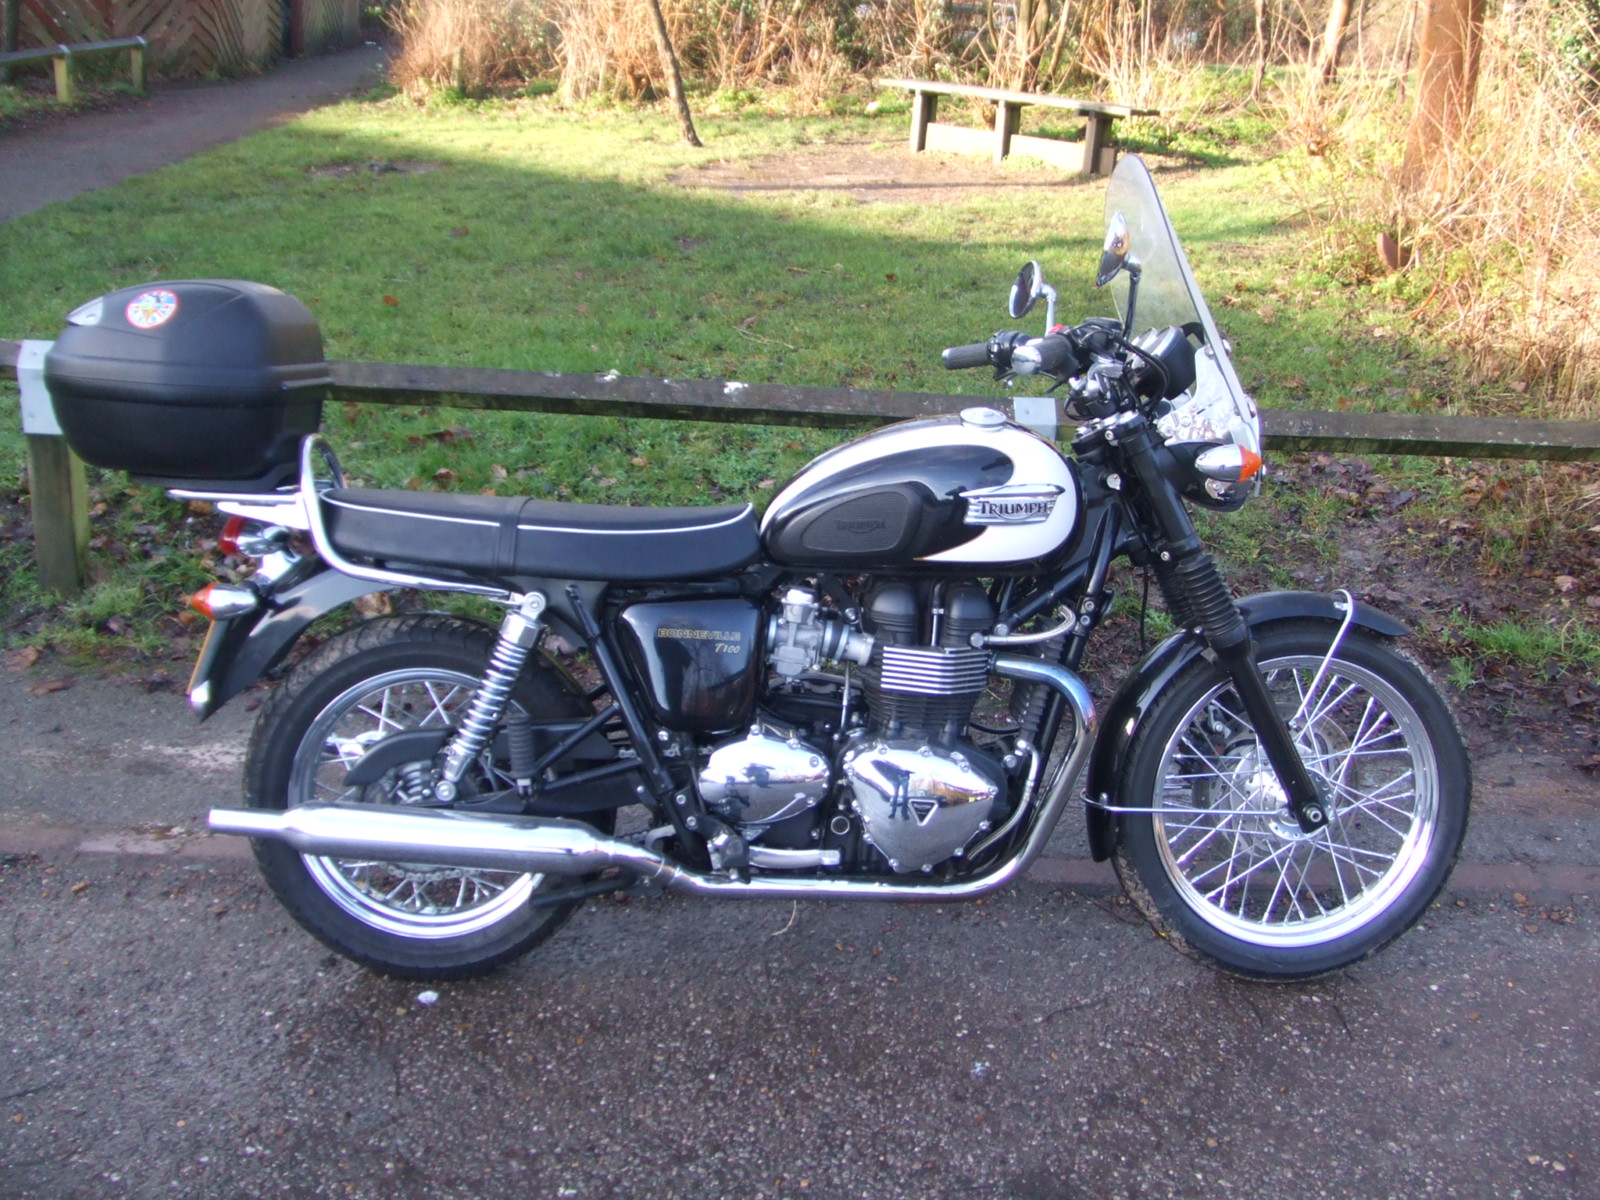 Triumph T100 Bonneville in VGC. New MoT, FSH.